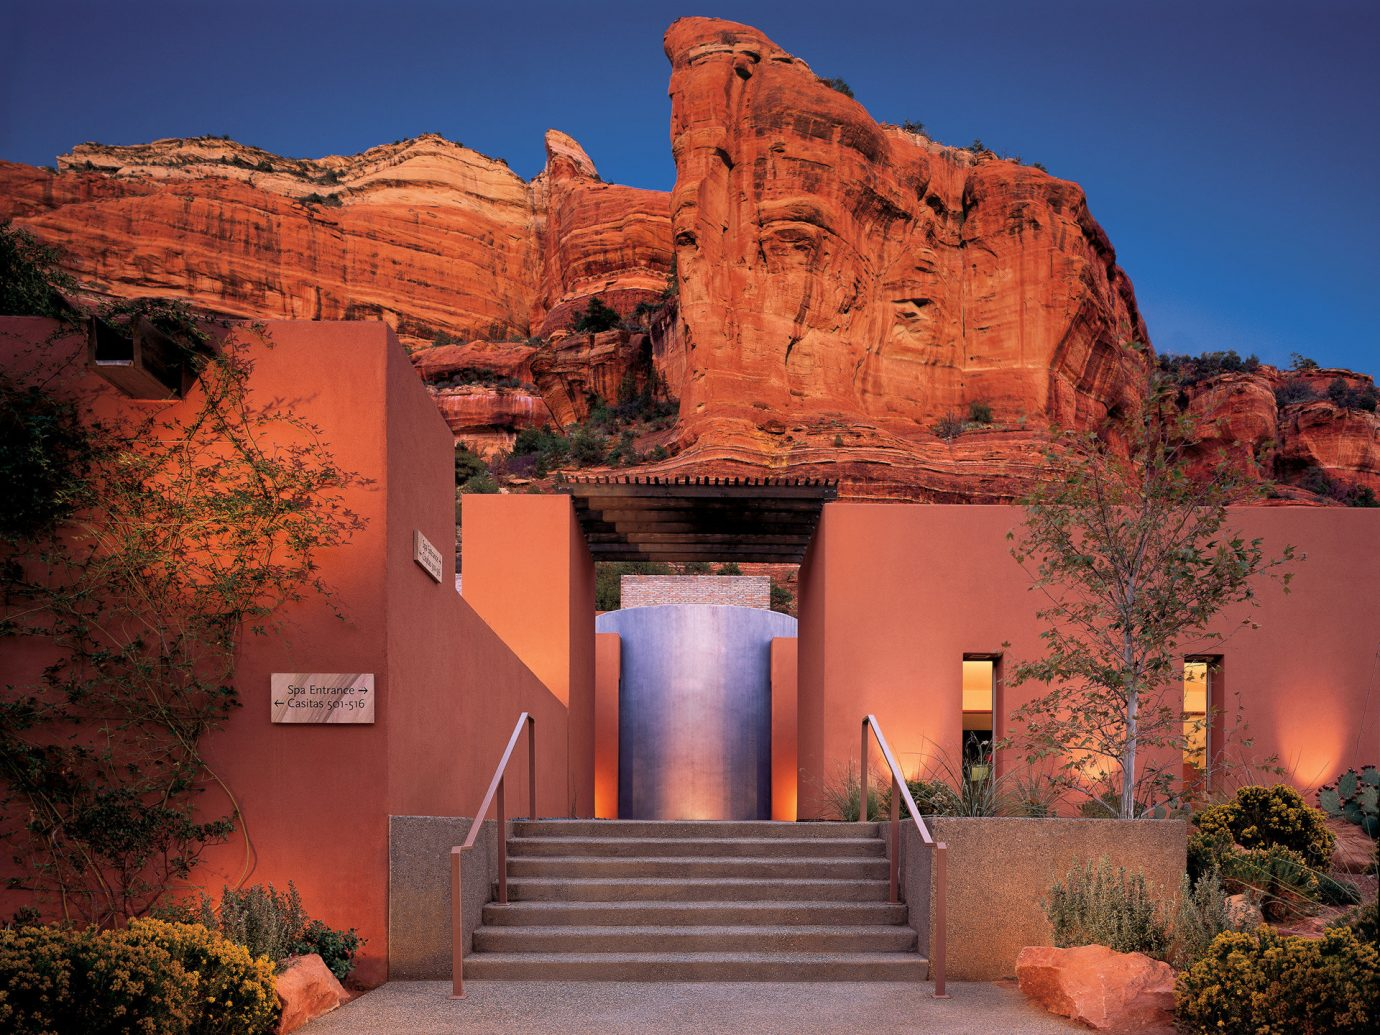 Trip Ideas tree outdoor valley canyon landmark Architecture arch rock landscape estate evening Sunset bushes stone